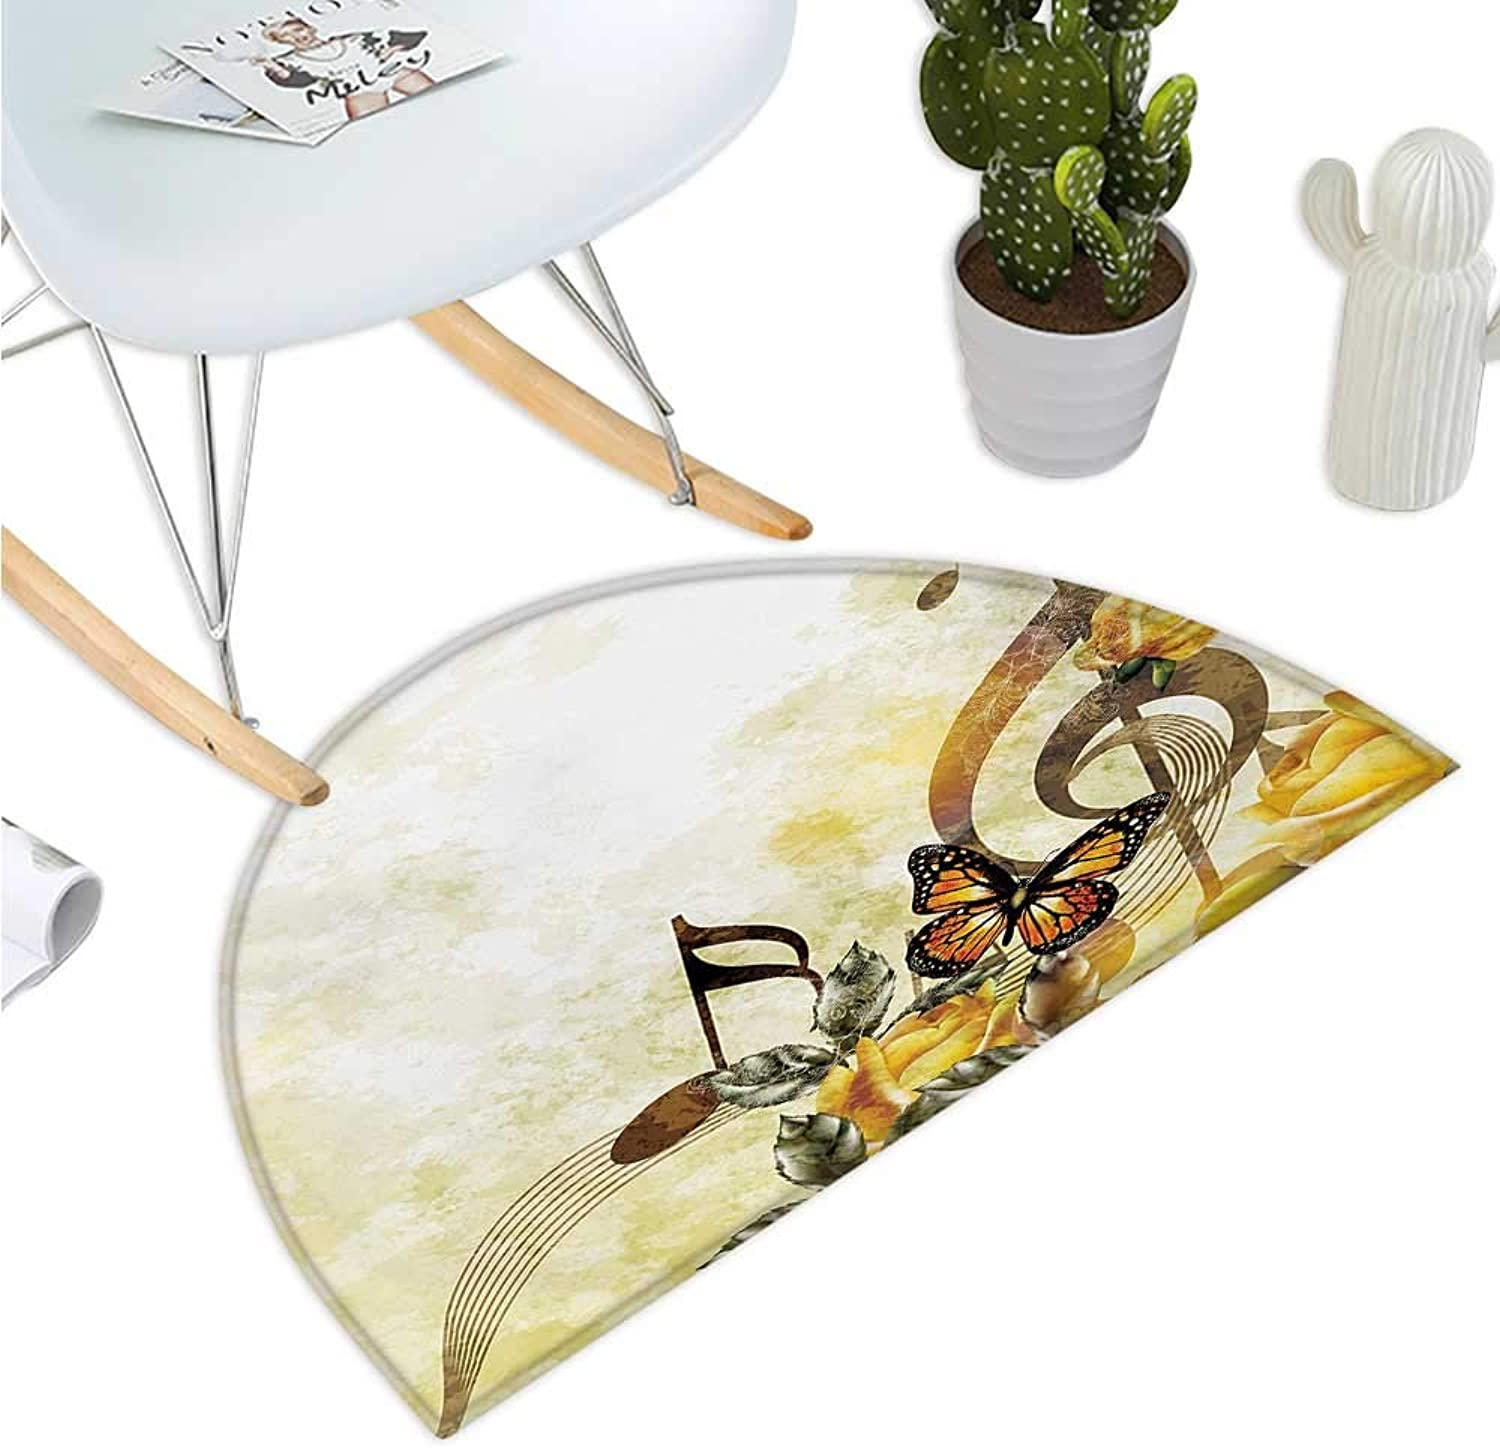 Music Semicircular Cushion Music pinks Romantic Antiquity Victorian Classic Bridal Floral Illustration Halfmoon doormats H 35.4  xD 53.1  Sepia and Yellow